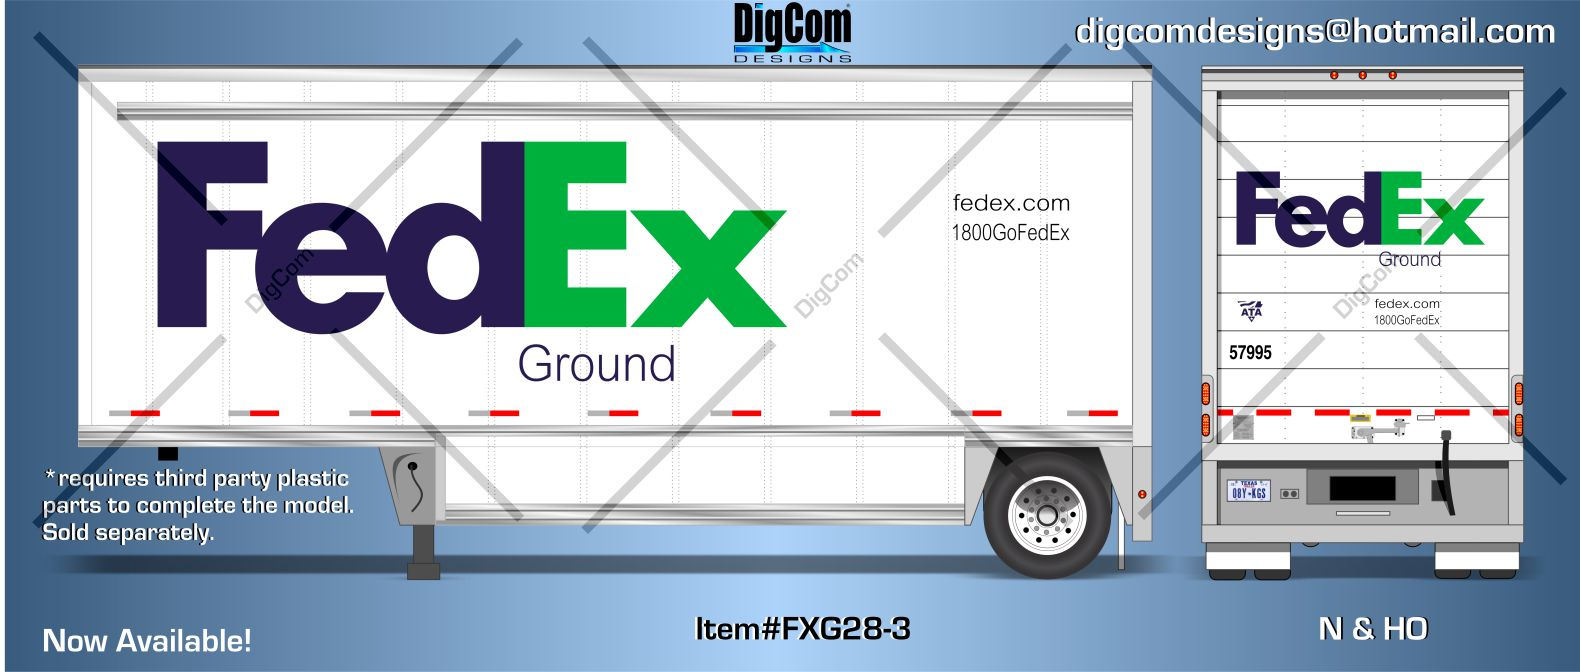 FEDEX GROUND DESIGN.jpg